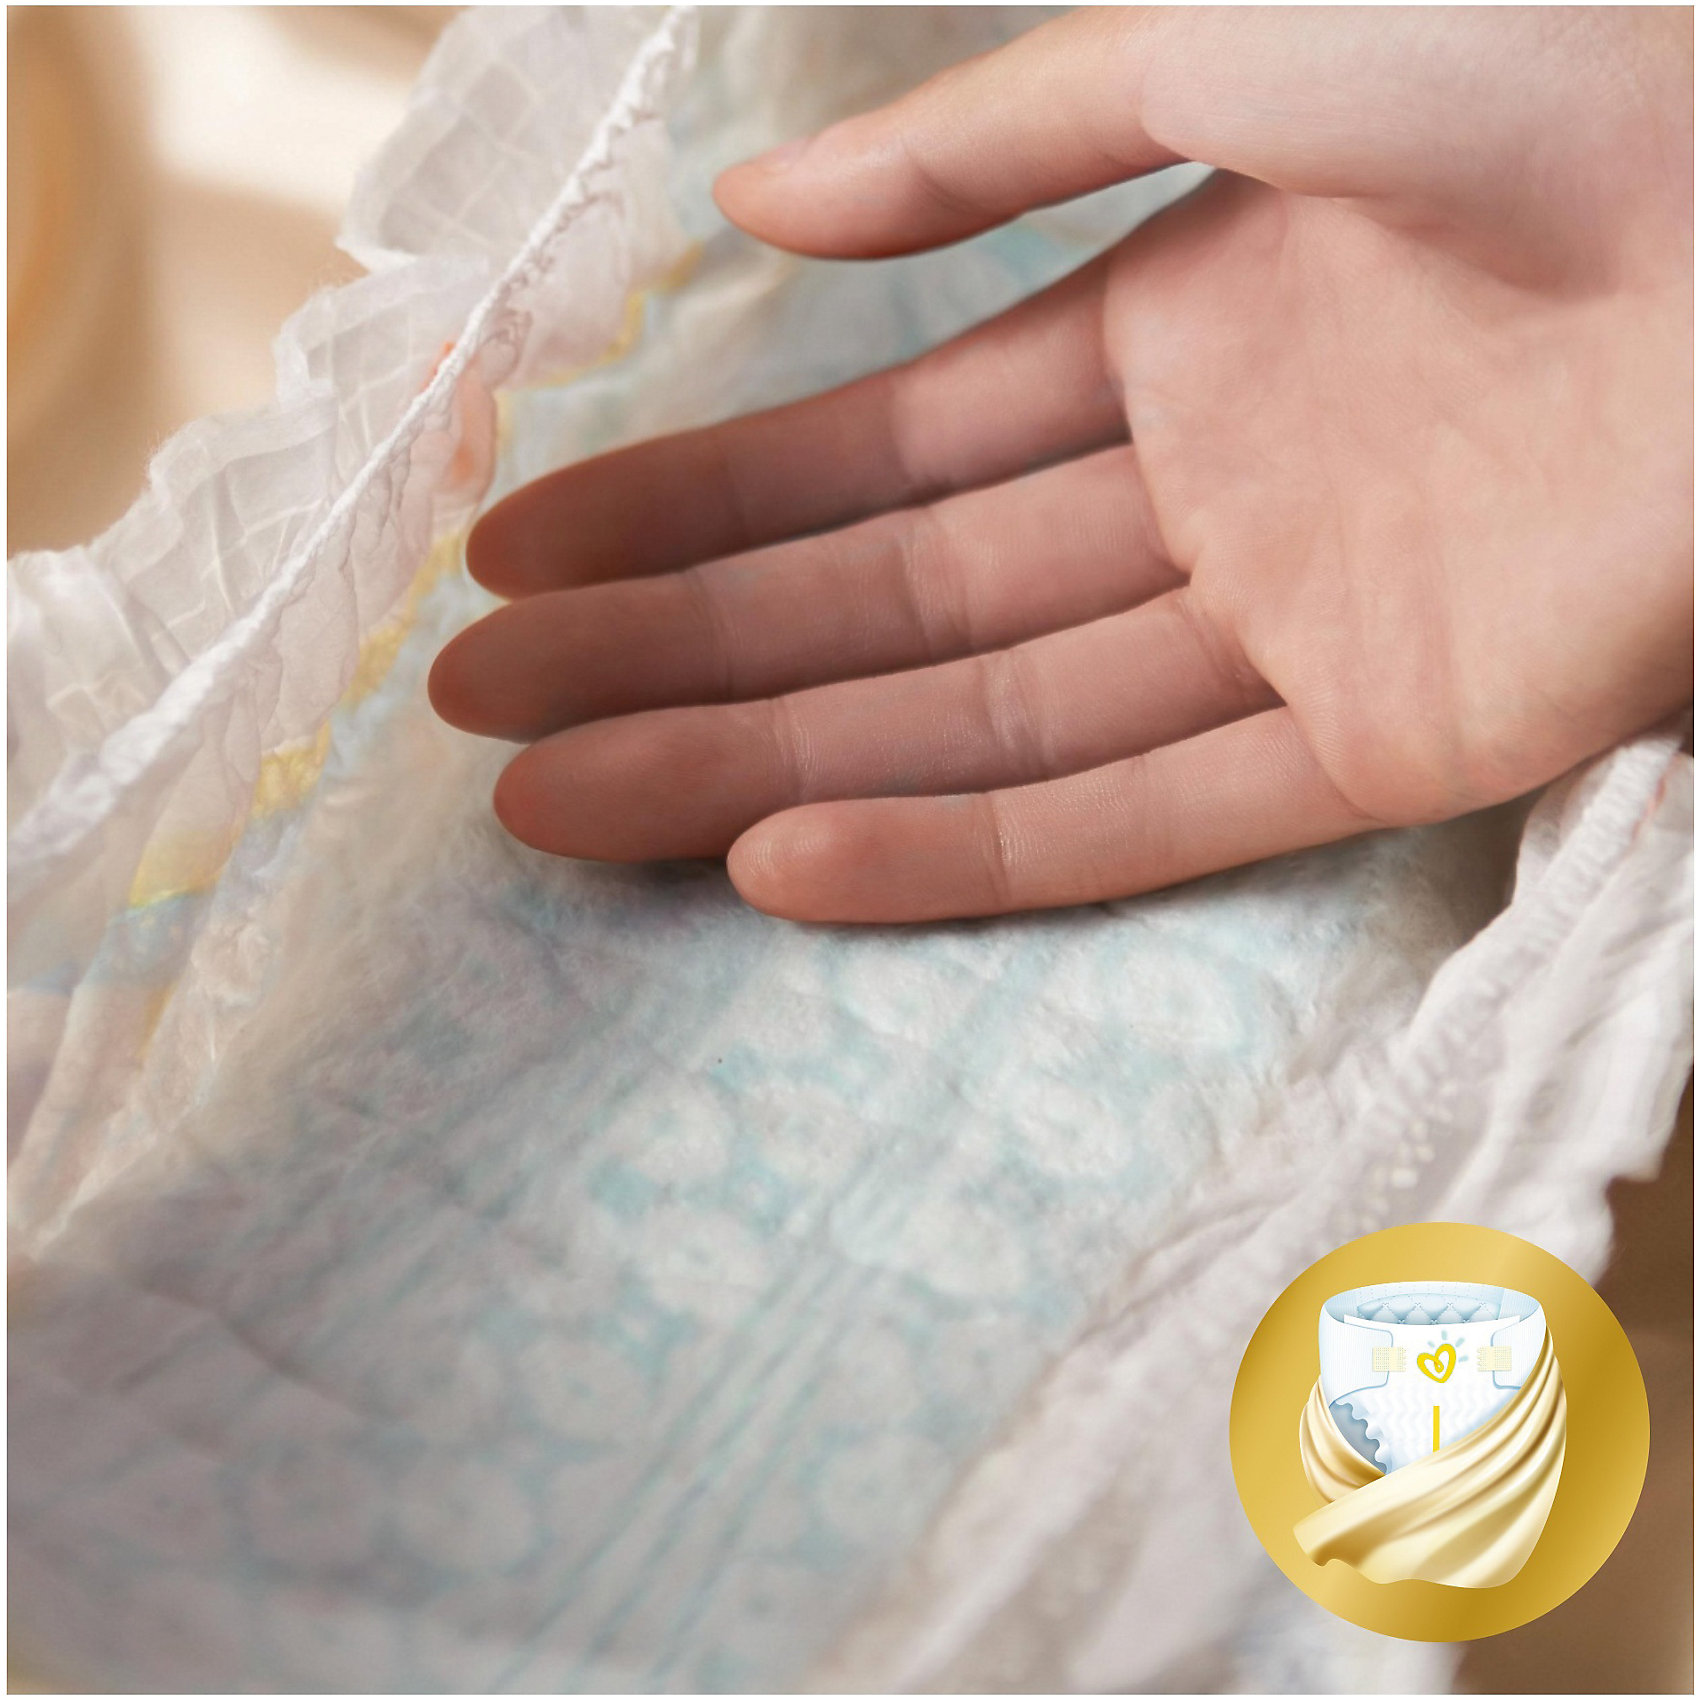 Подгузники Pampers Premium Care, 0-2,5 кг, 0 размер, 30 шт., Pampers